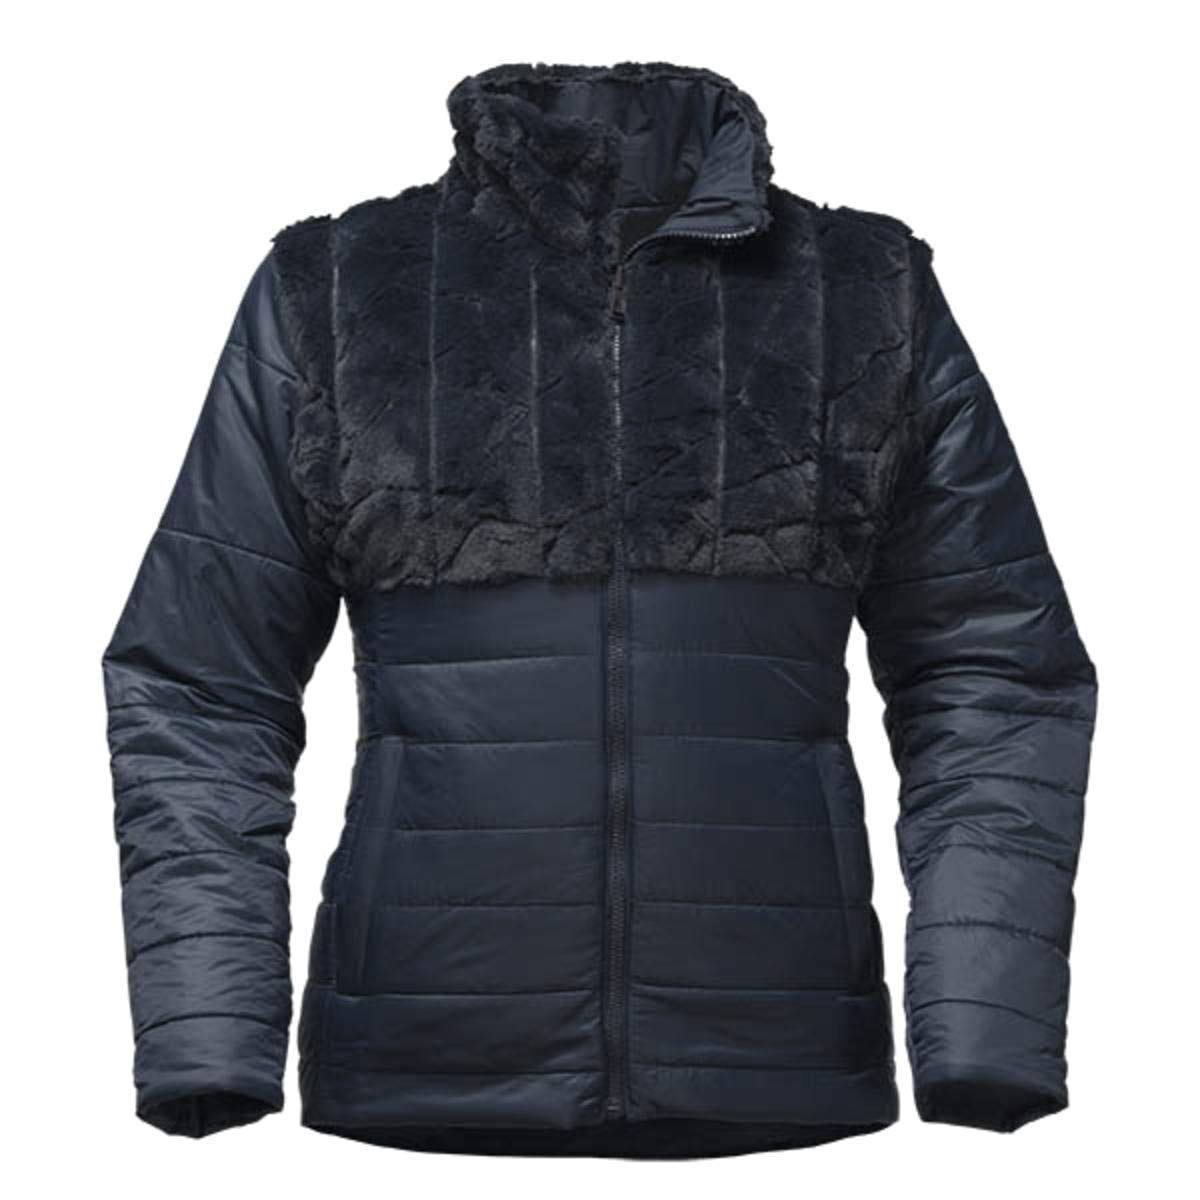 e8c8c2a30 The North Face Women's Harway Reversible Puffer Coat